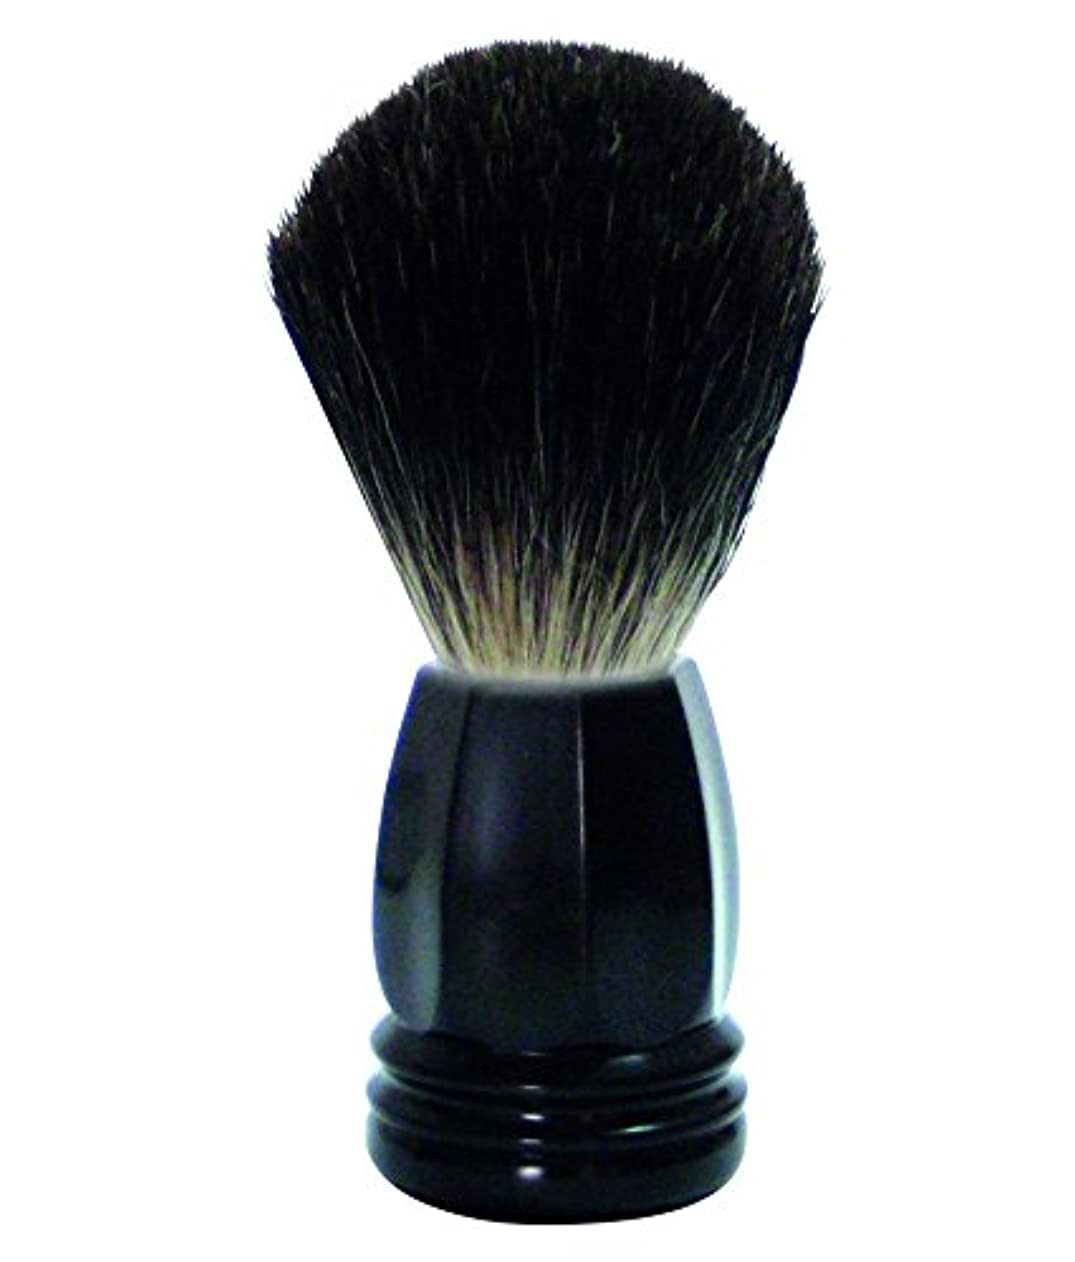 不適切なさせる研磨剤GOLDDACHS Shaving Brush, 100% Badger hair, black polymer handle